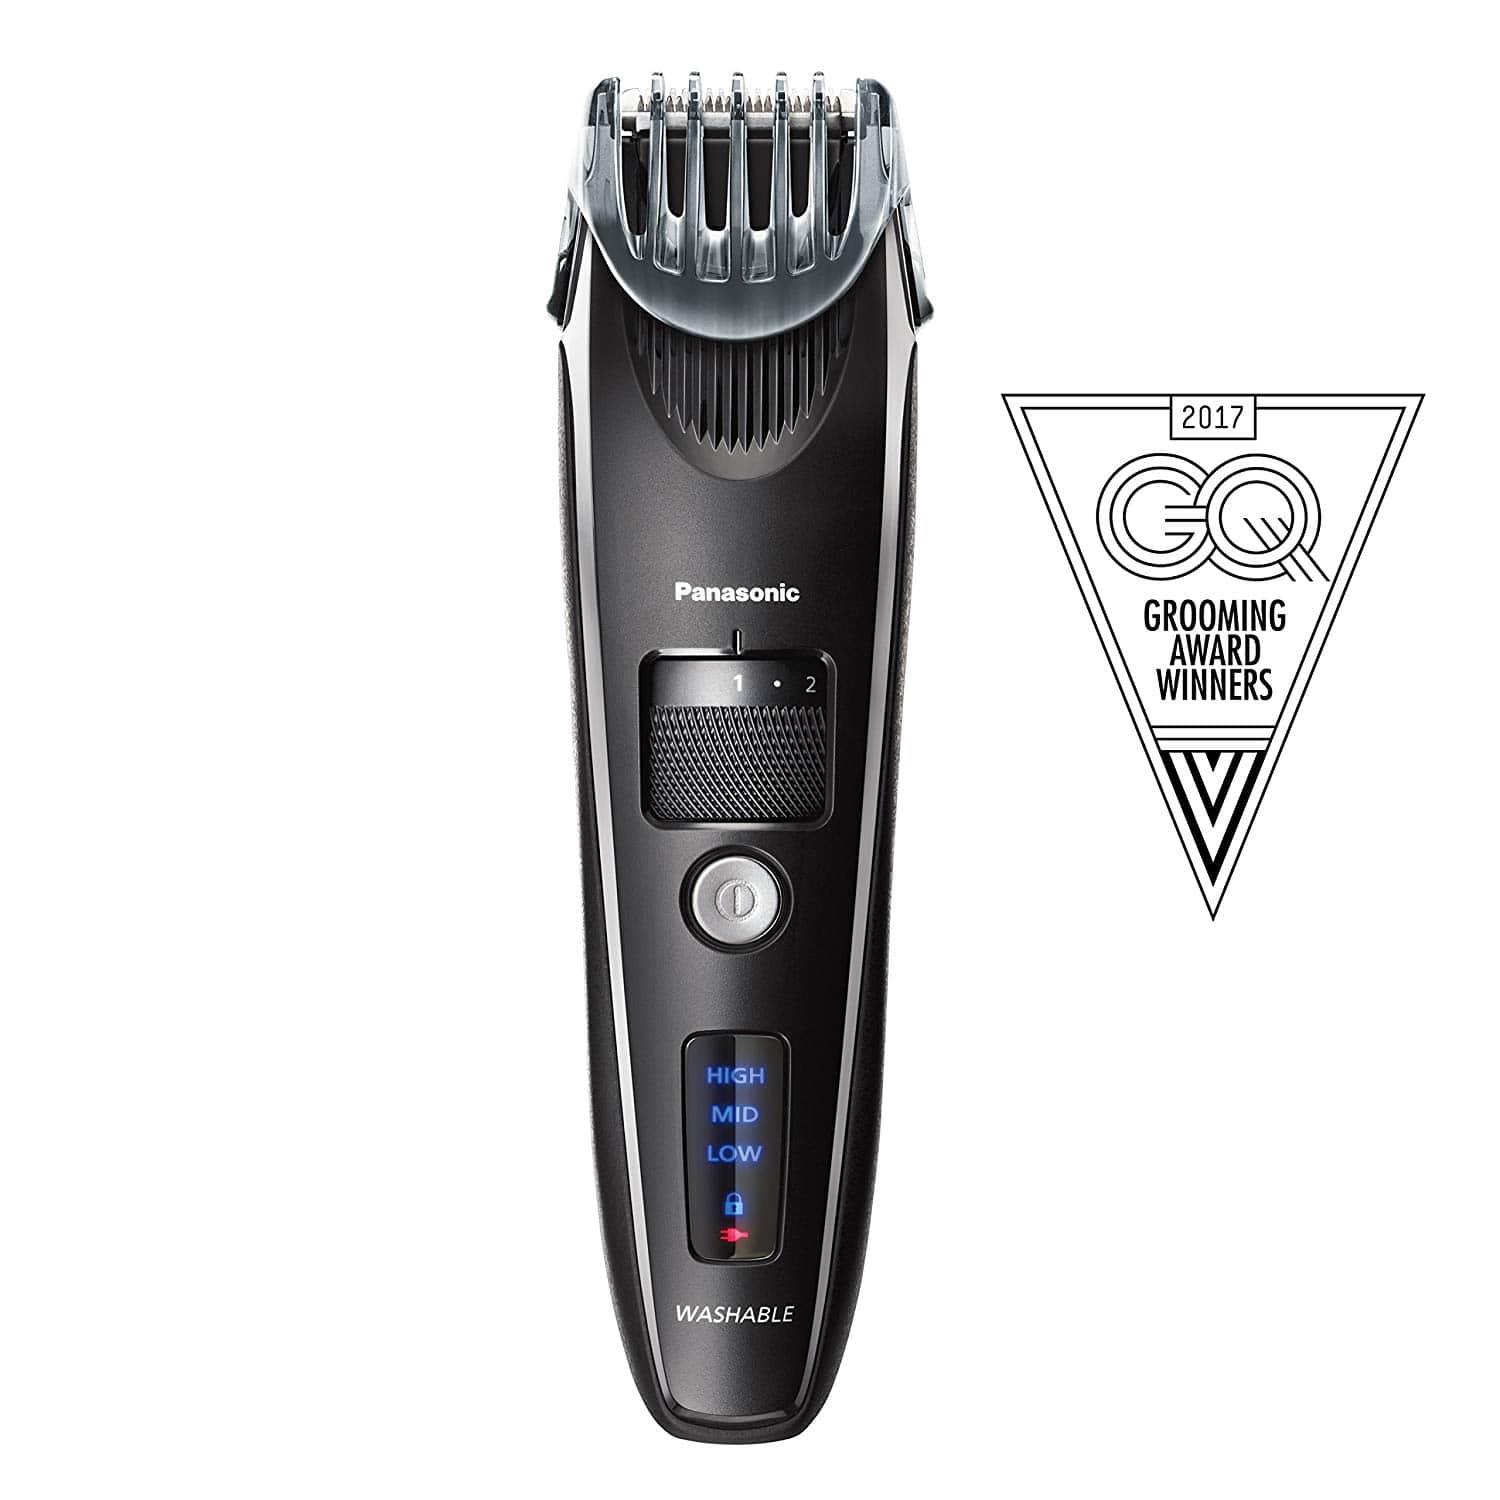 Panasonic Beard Trimmer for Men ER-SB40-K 67.86 @ Amazon $67.86